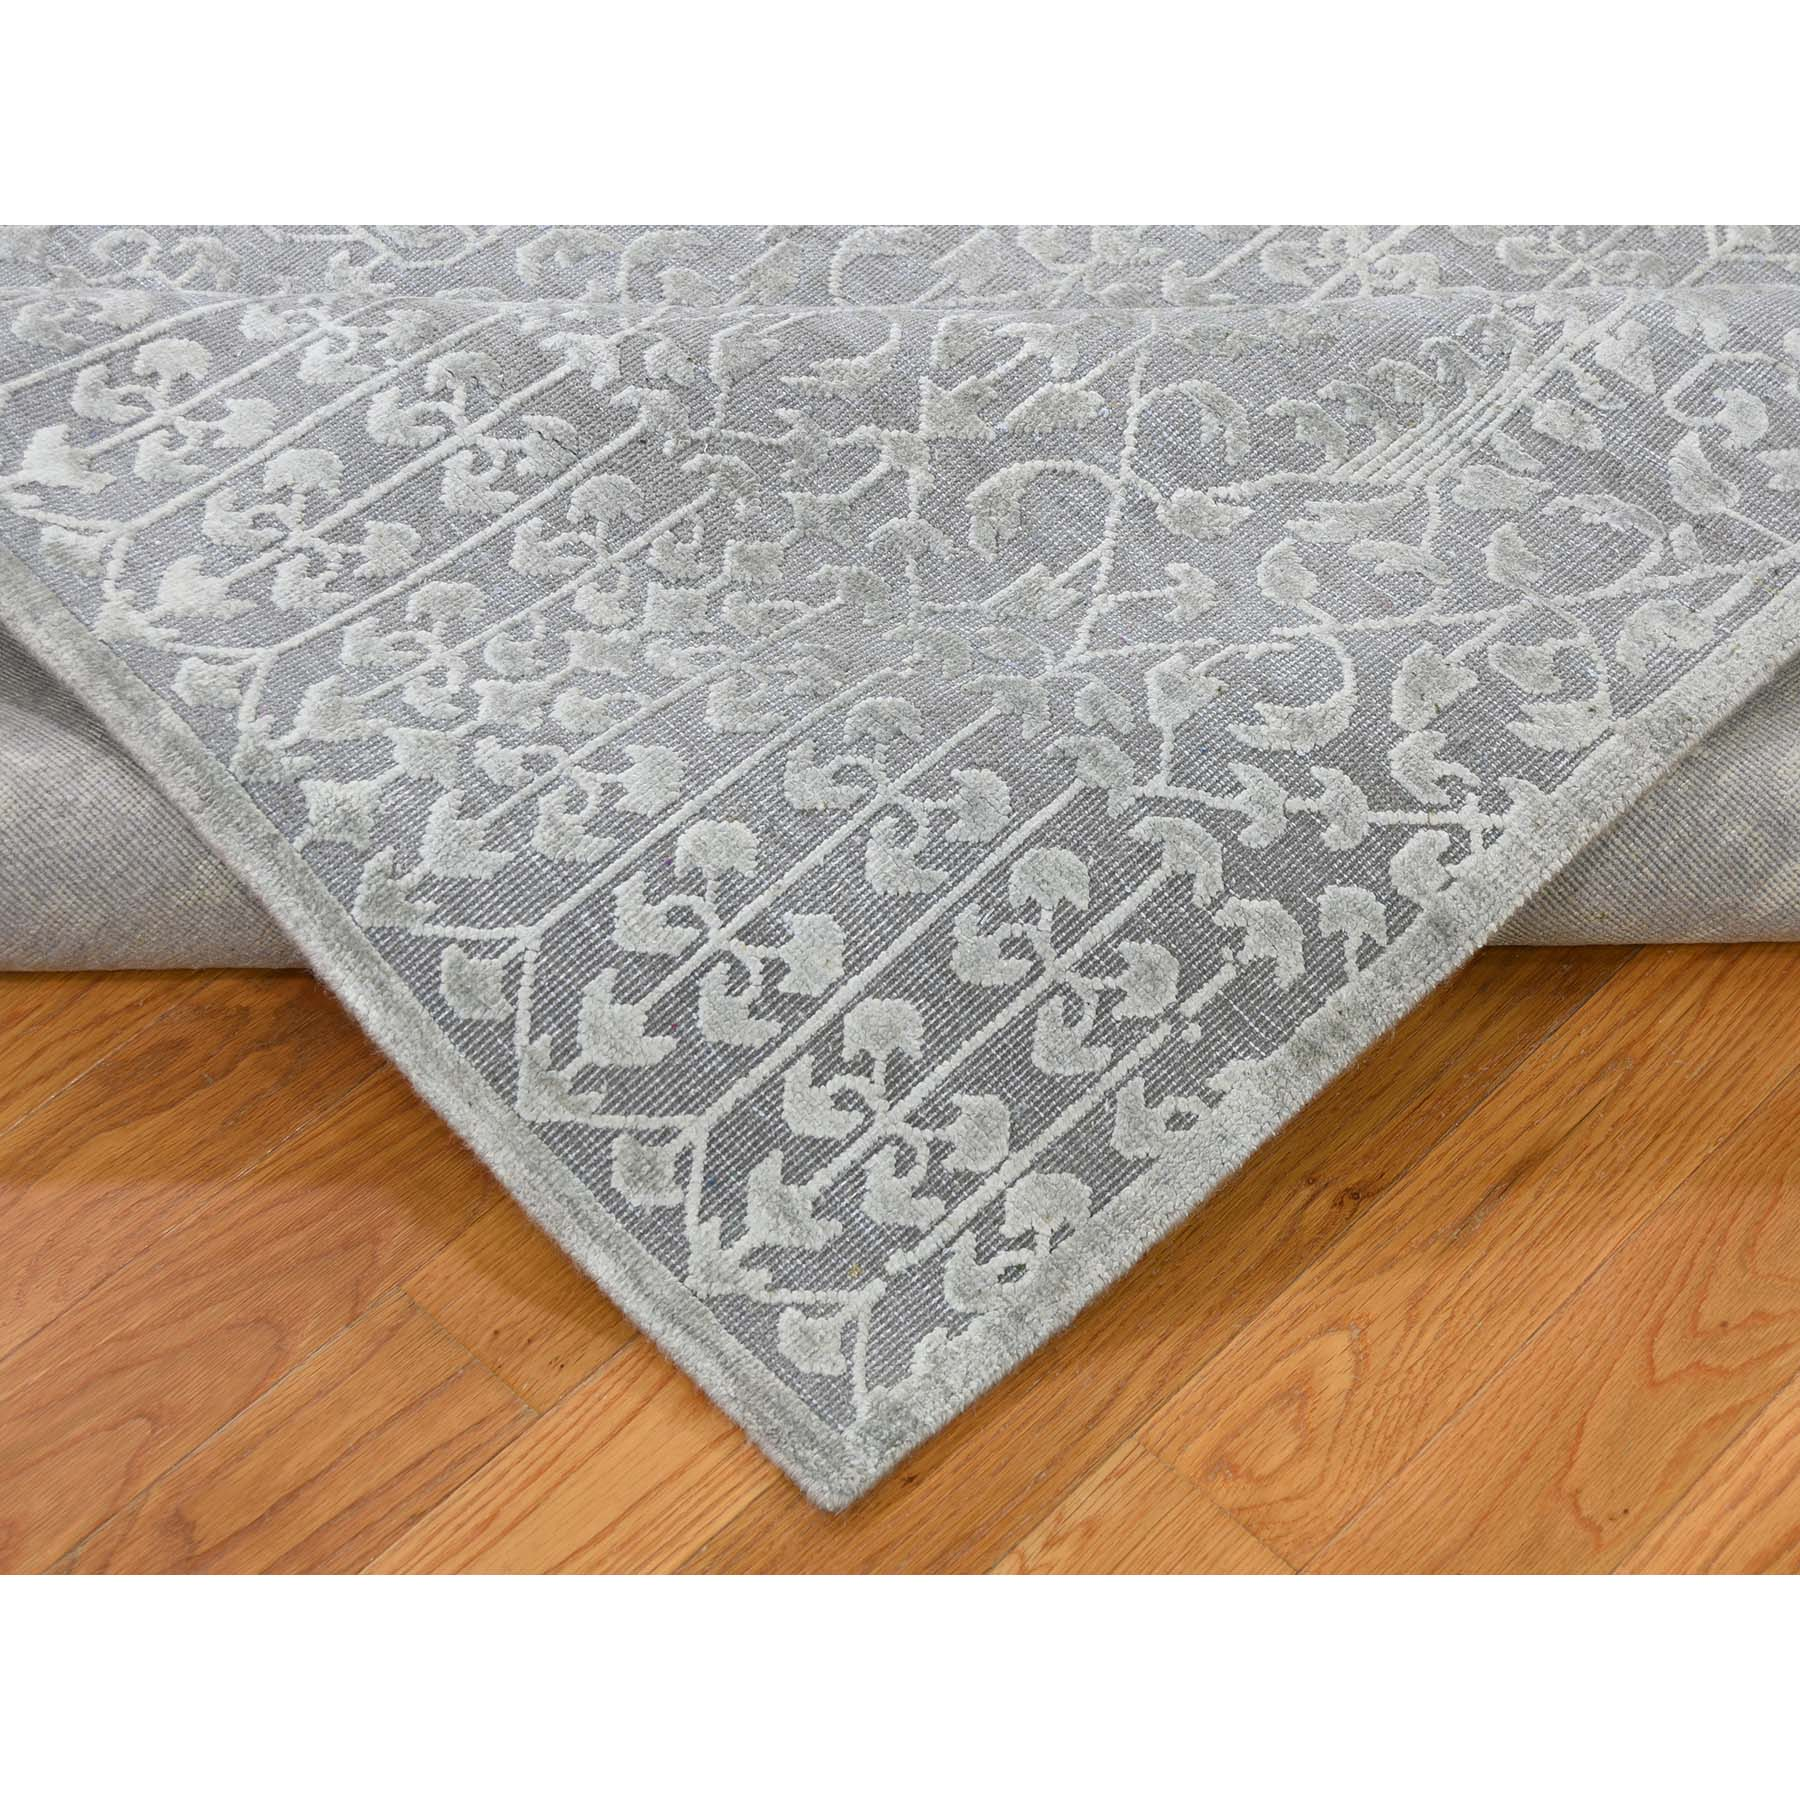 9-x12-1  Tone on Tone Silk with Oxidized Wool Hand-Knotted Oriental Rug